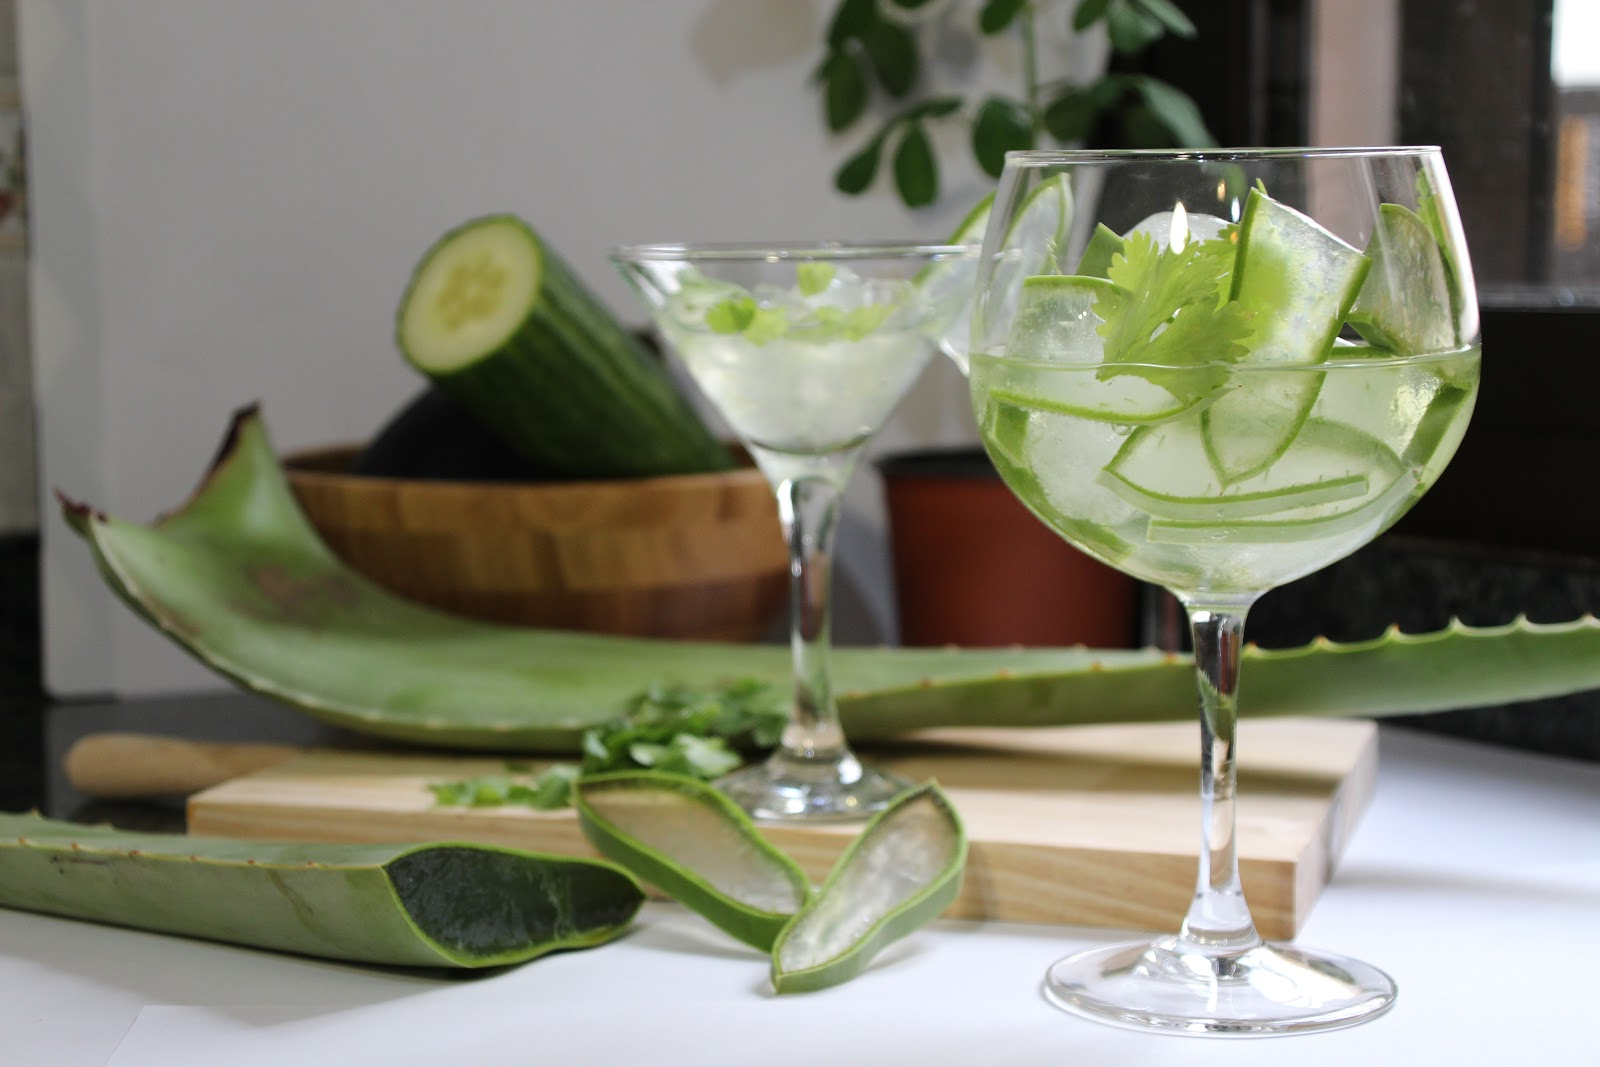 Can we lose weight with Aloe vera?